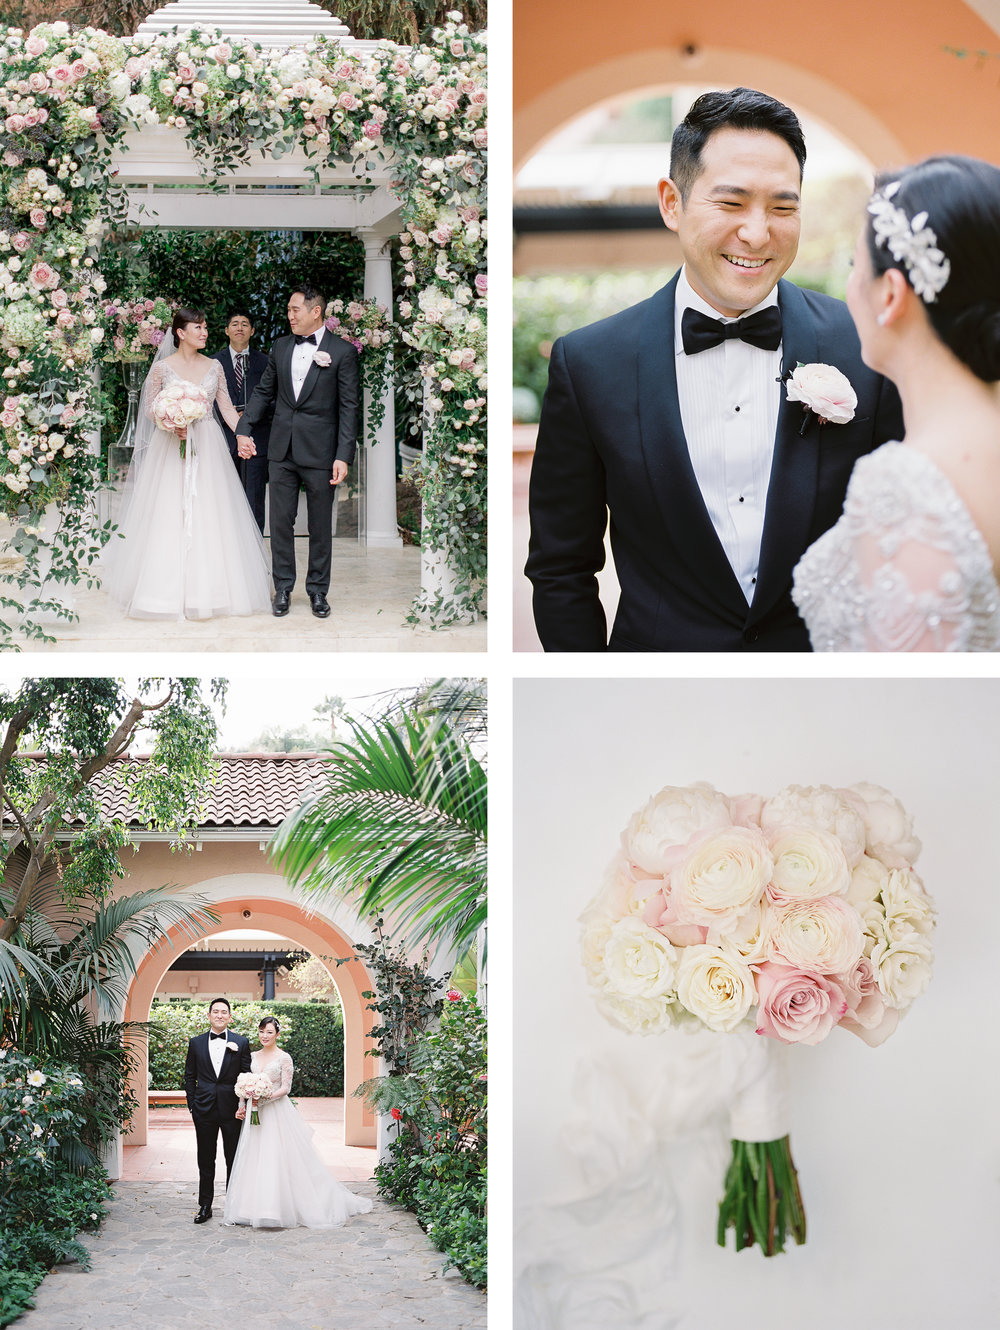 BEL-AIR WEDDING AT HOTEL BEL-AIR - eric + elizabeth